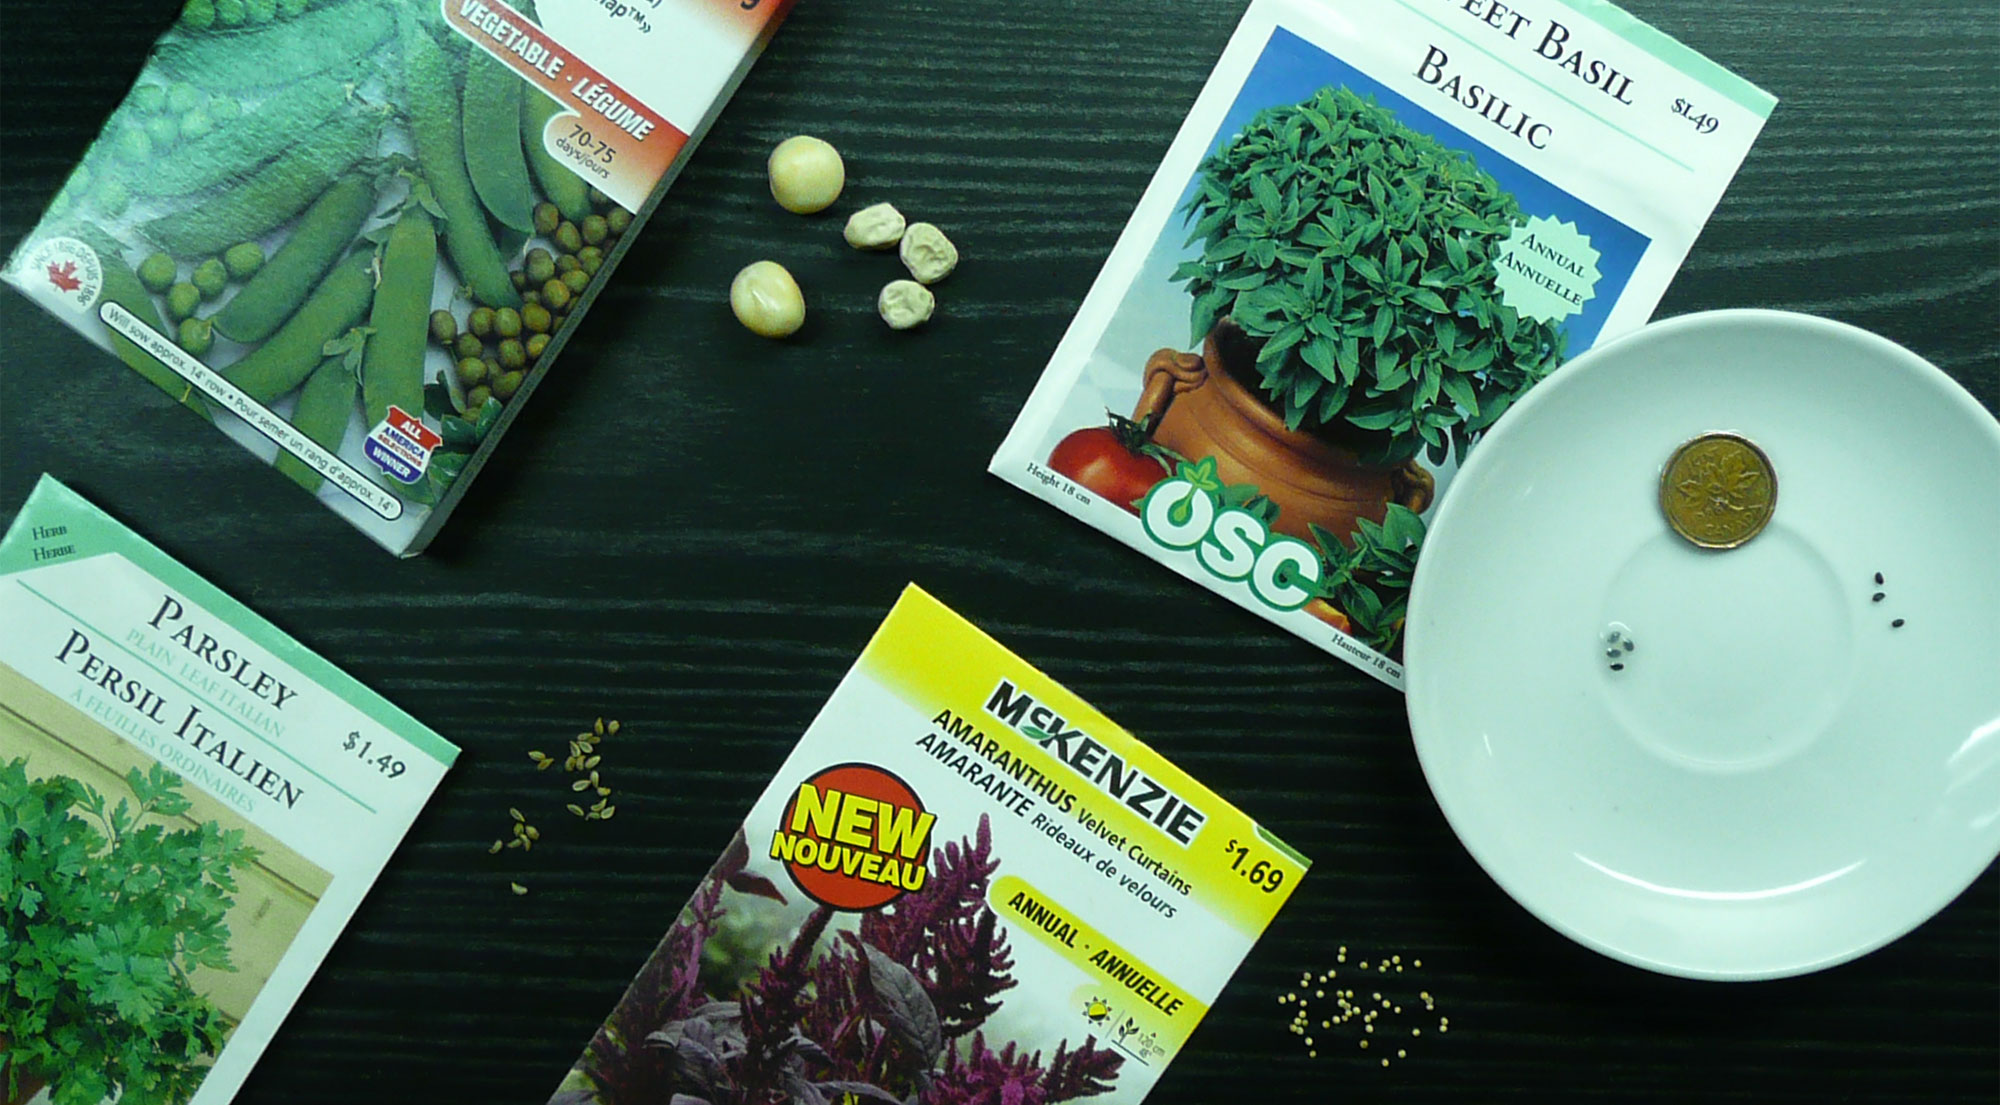 A selection of seeds